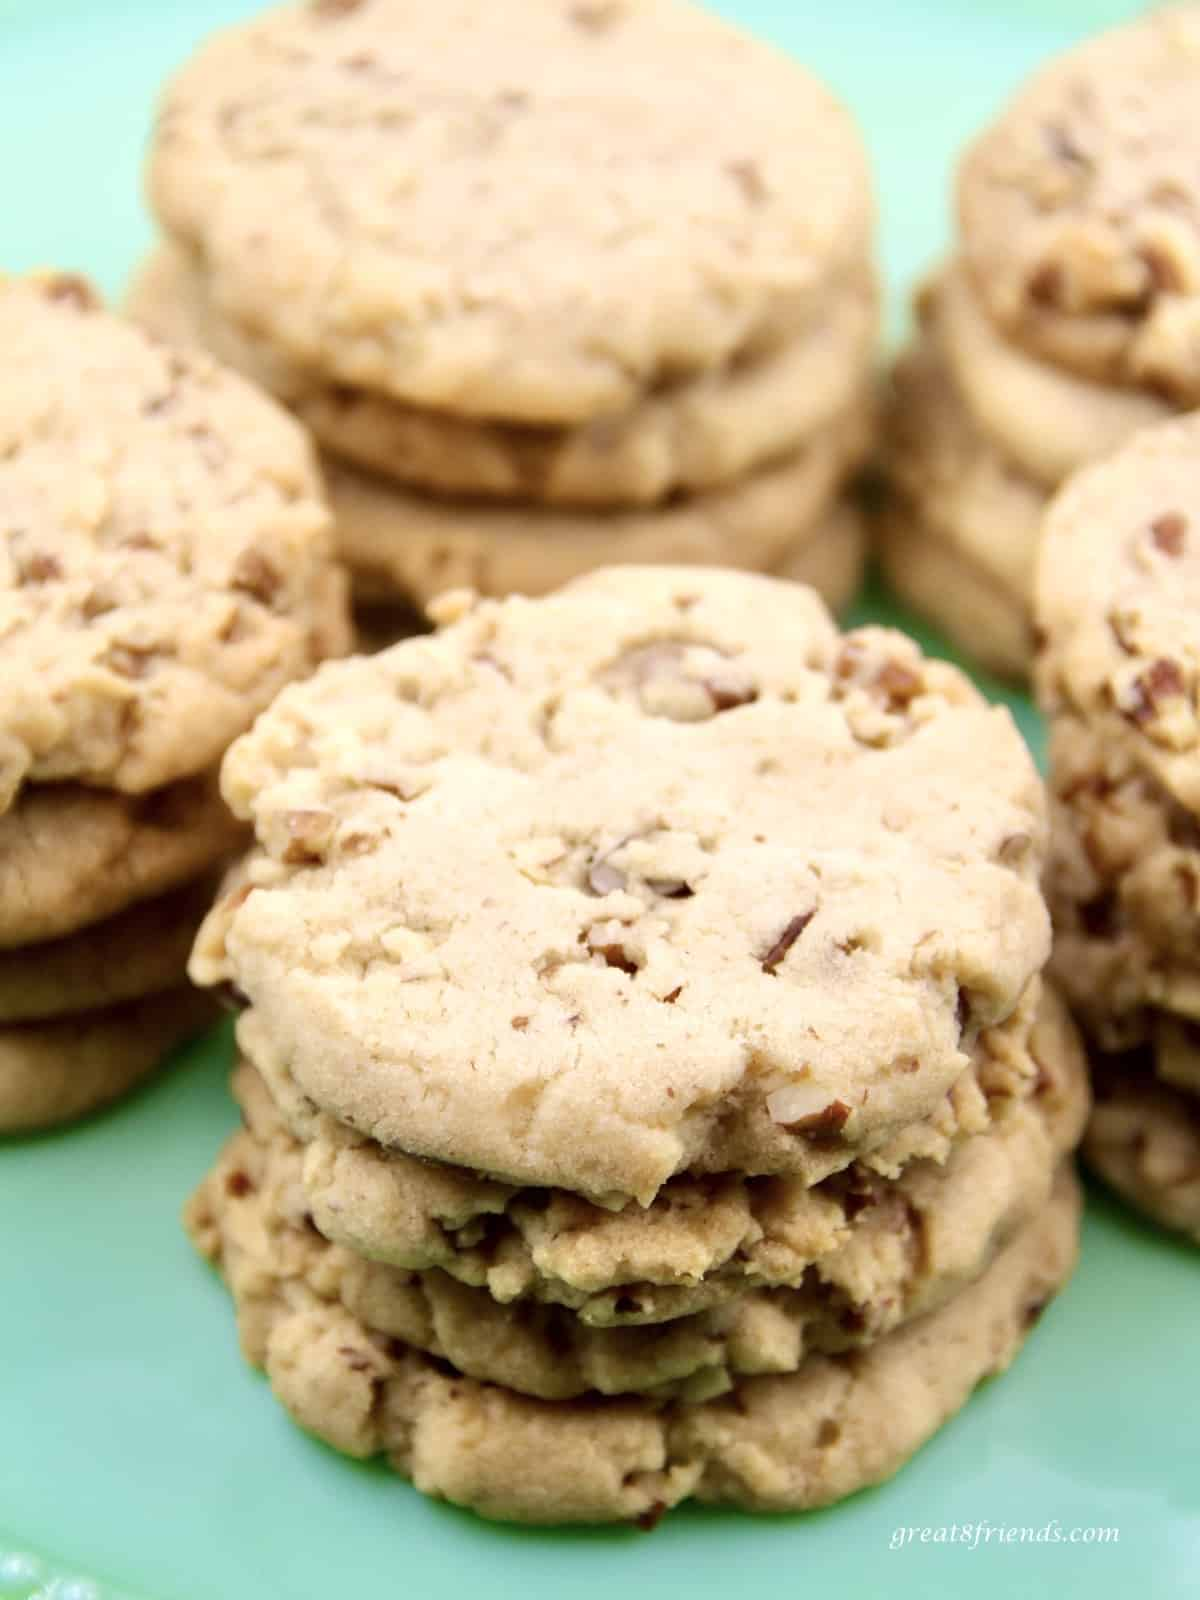 Unclose photos of pecan shortbread sandies cookies stacked on a light green plate.